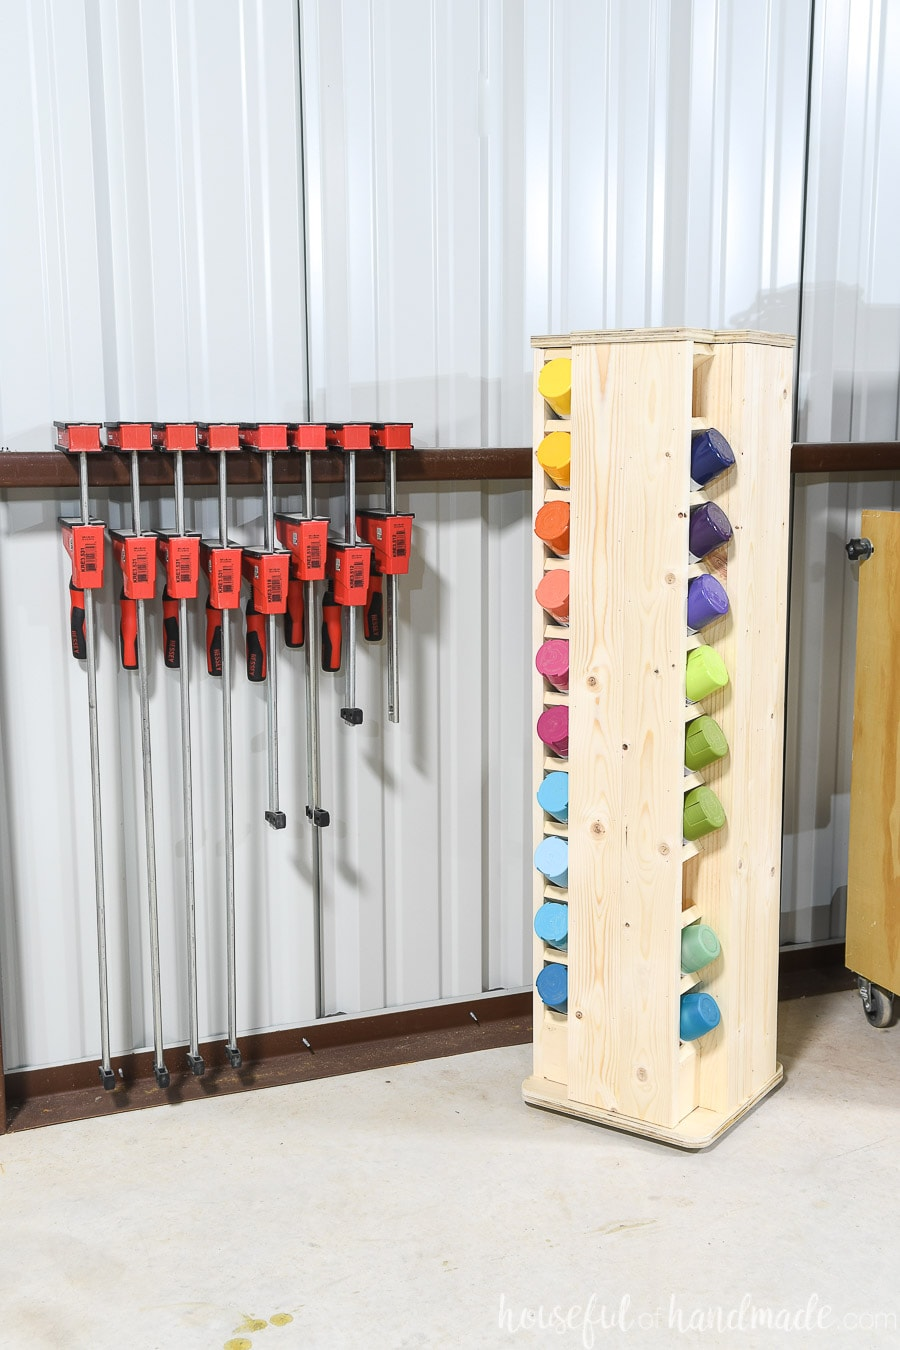 Small rotating spray paint storage cabinet with spray paint cans in organized in a rainbow in a corner next to bar clamps in a shop.